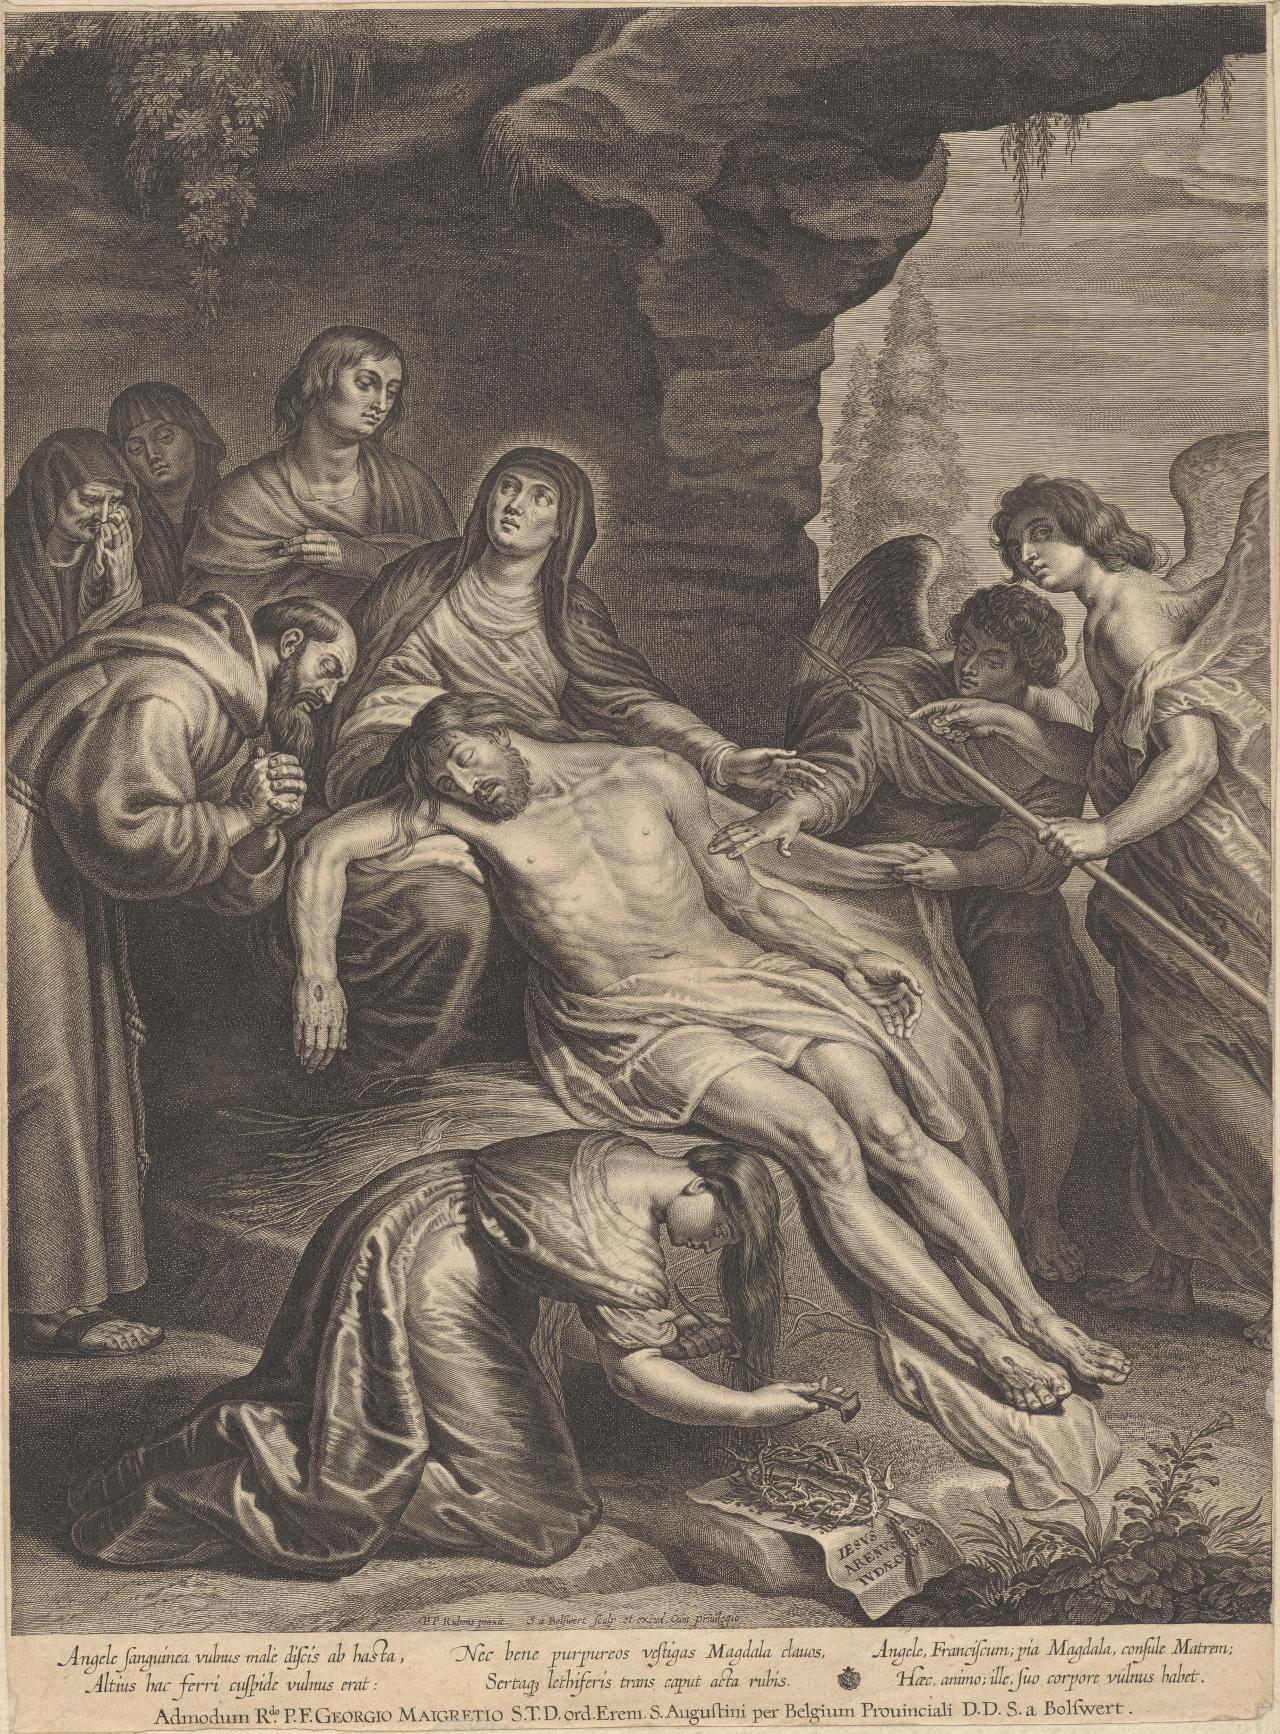 The Body of Christ in the Lap of The Virgin